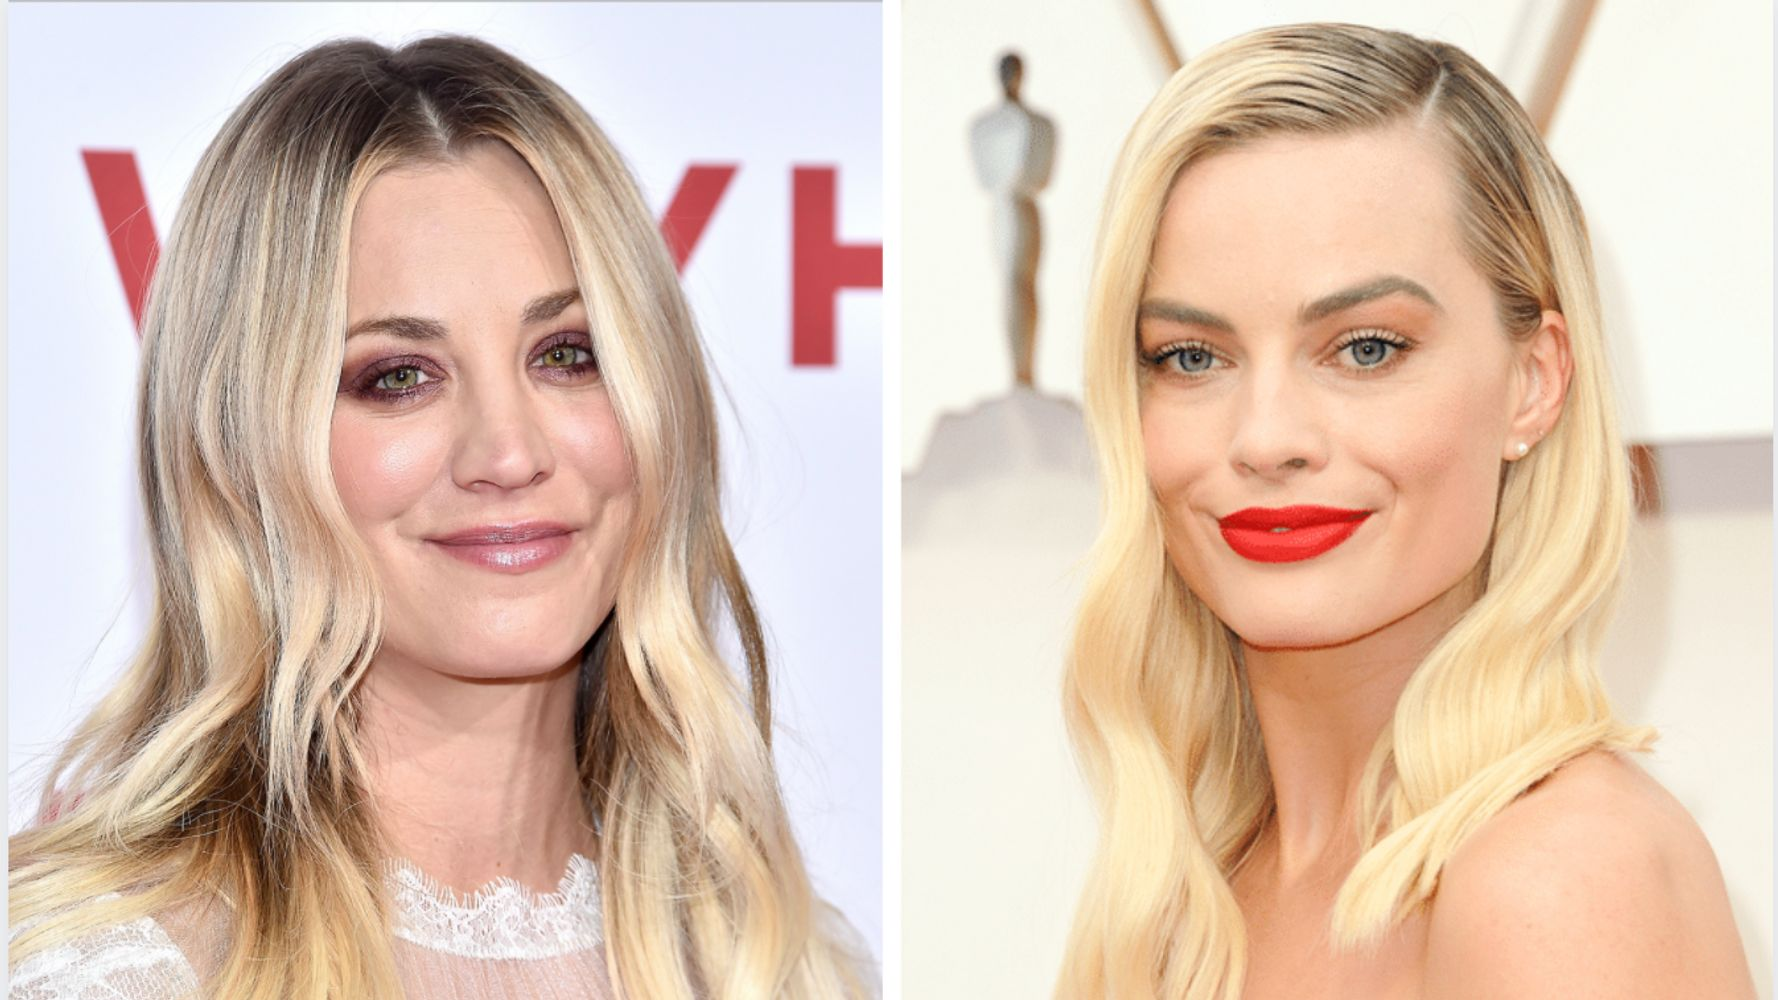 Kaley Cuoco Denies Margot Robbie Feud: 'I've Never Even Met Her'